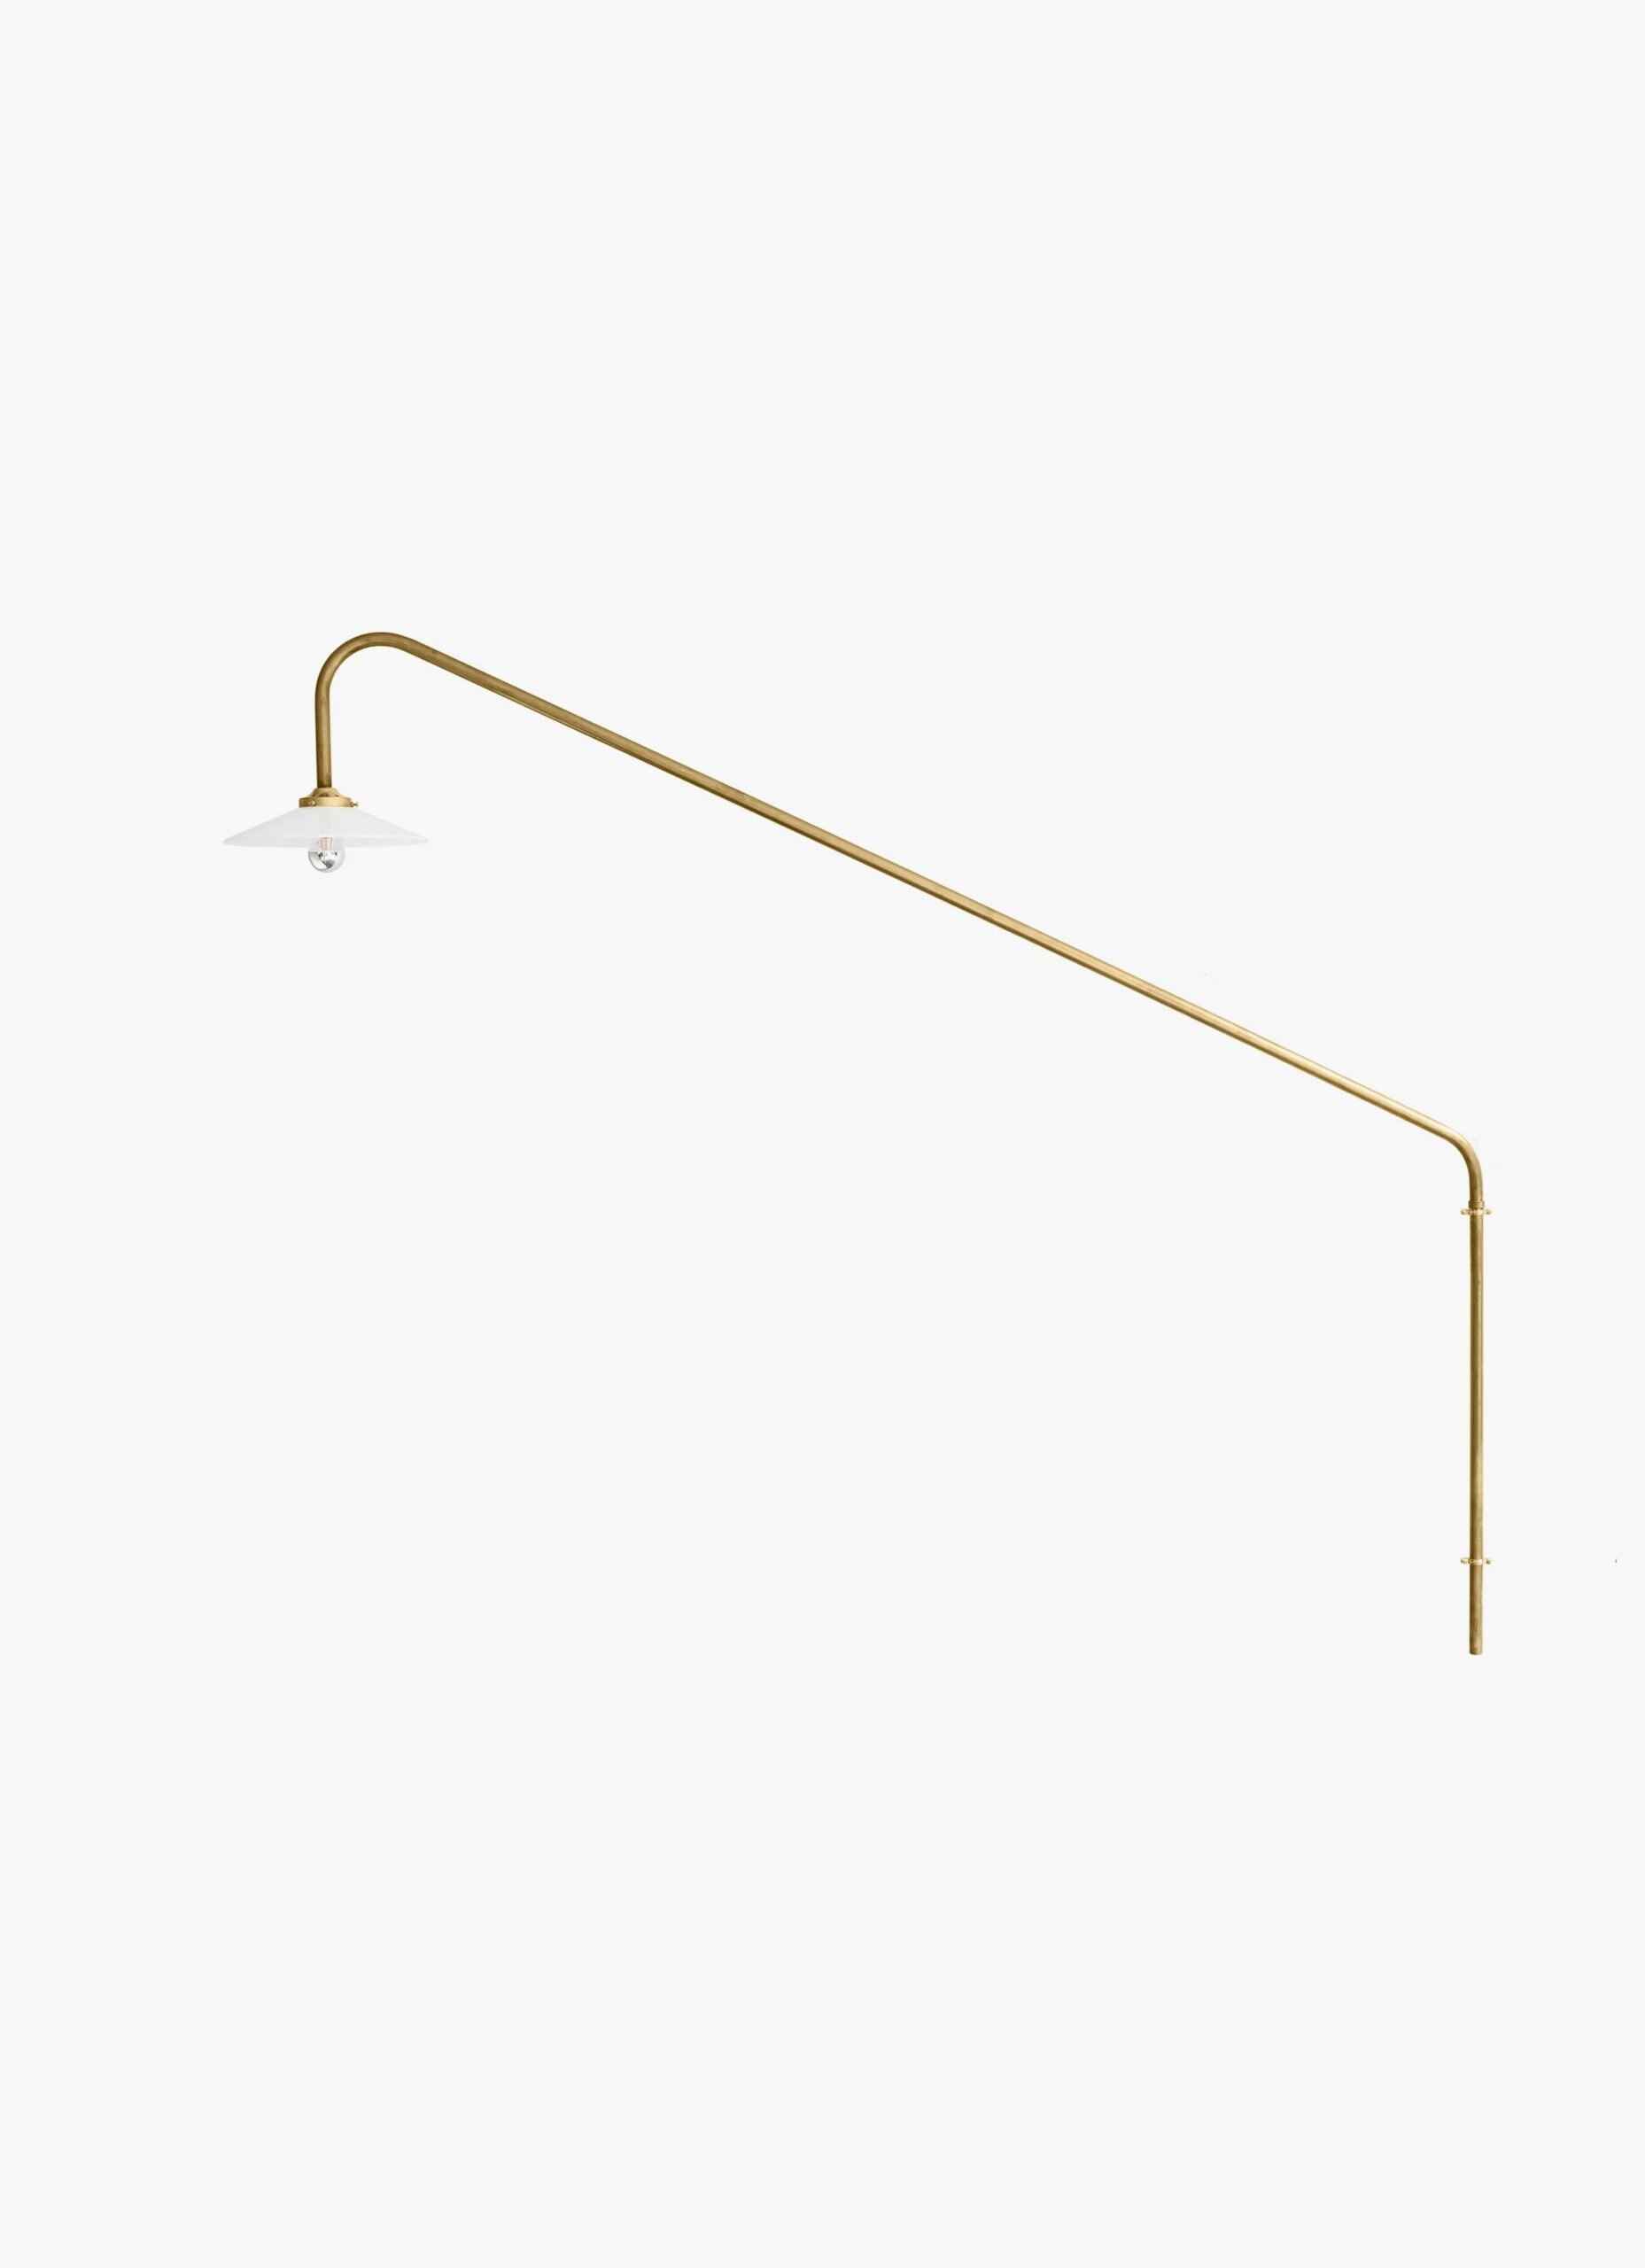 Valerie Objects - Hanging Lamp - No1 - brass